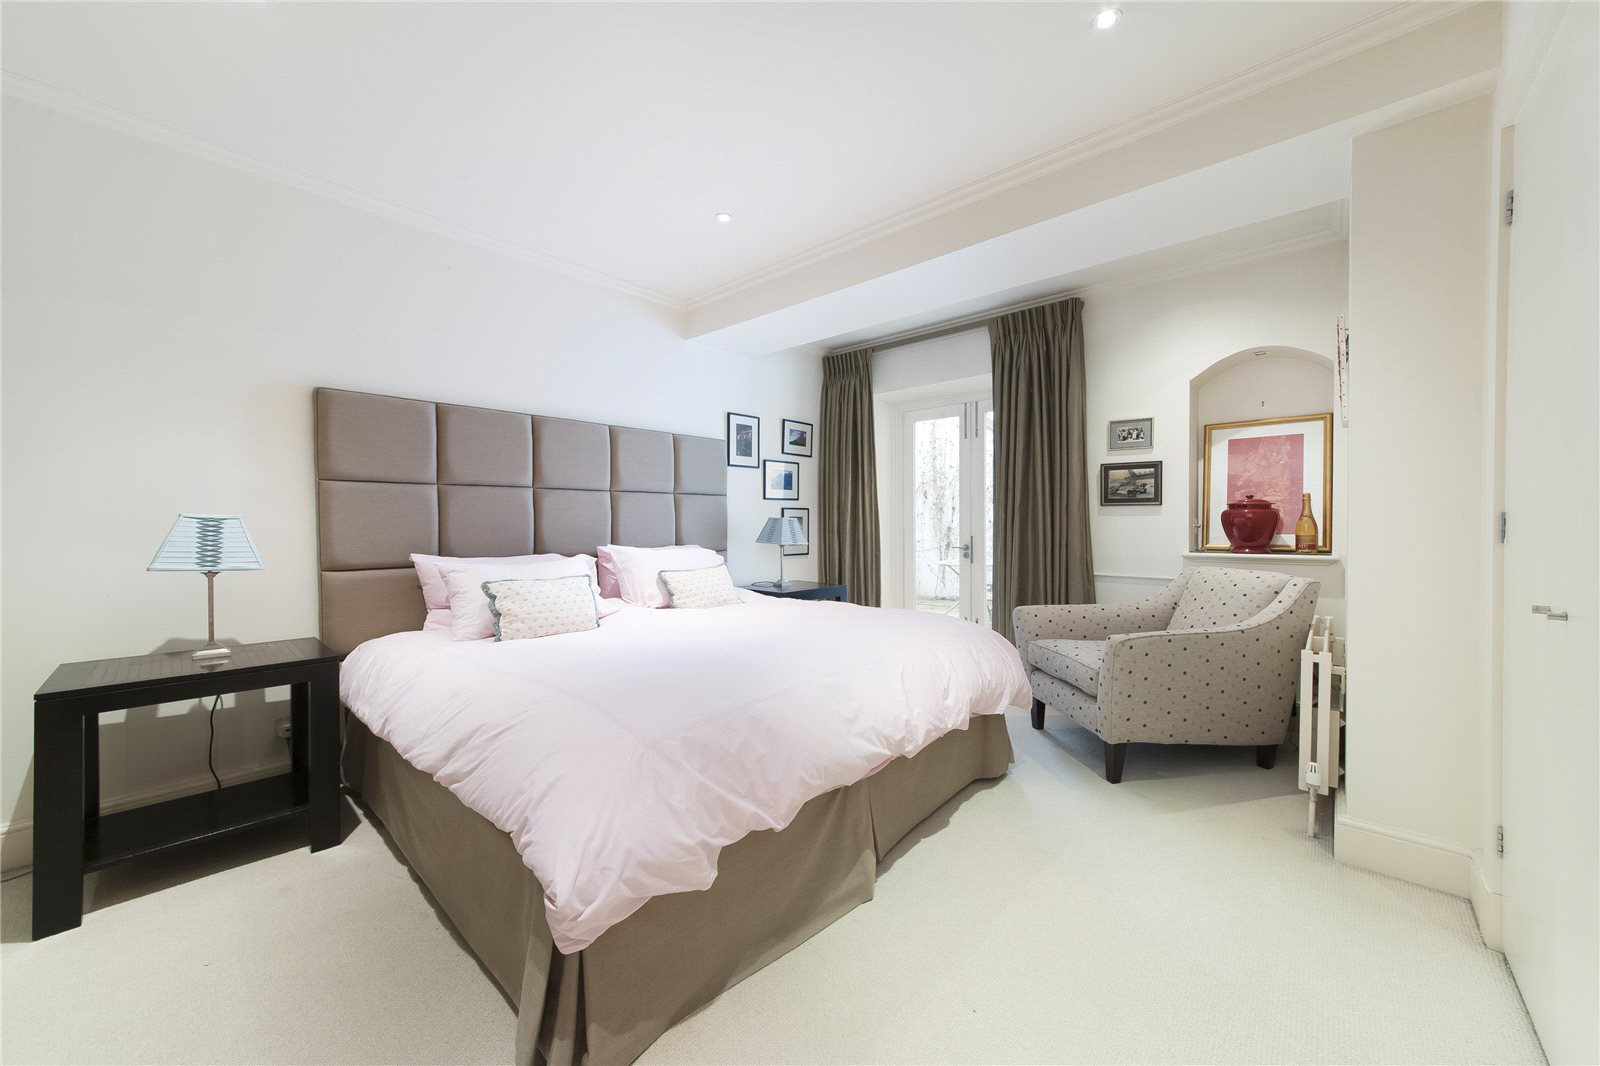 Additional photo for property listing at Cadogan Place, London, SW1X London, England